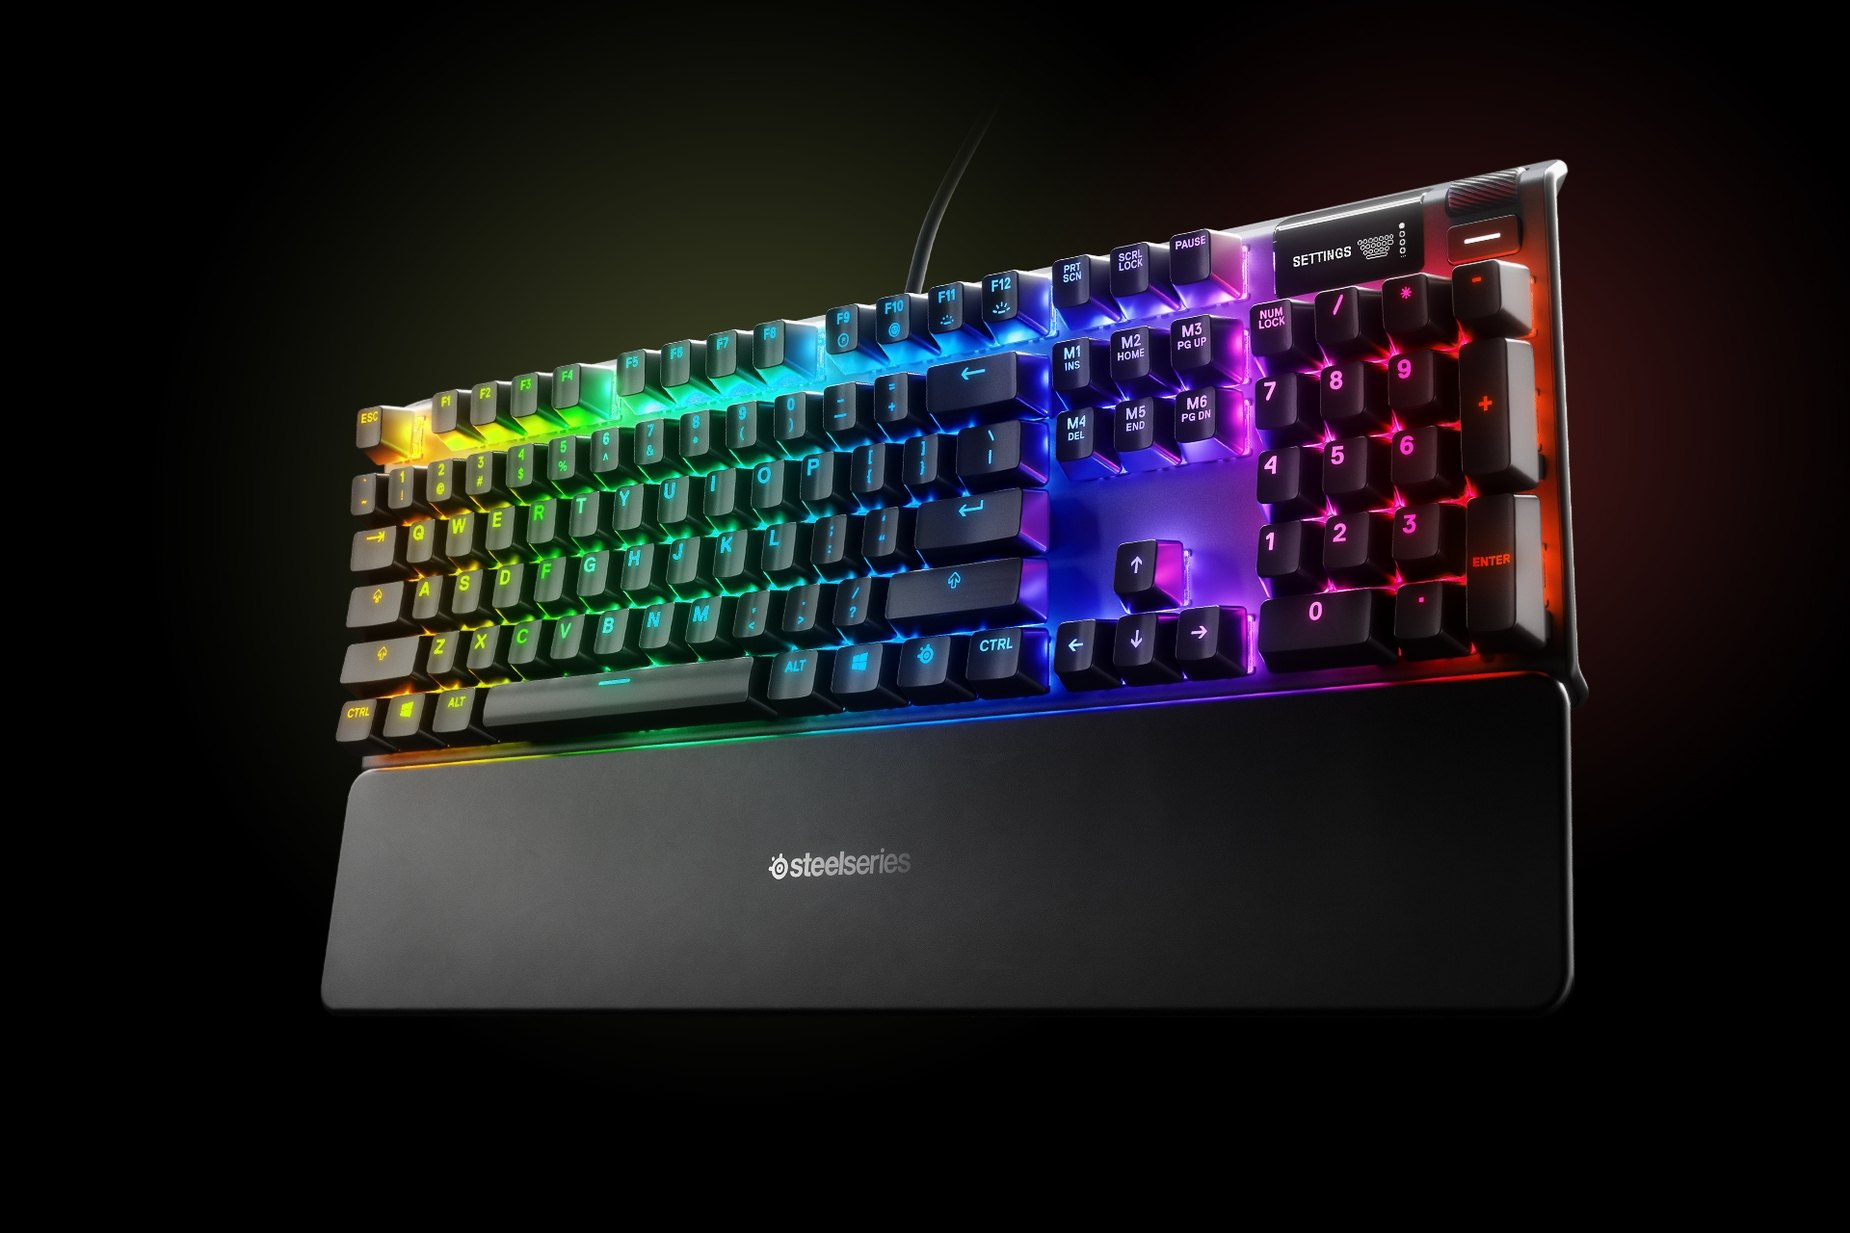 Thai - Apex 7 (Red Switch) gaming keyboard with the illumination lit up on dark background, also shows the OLED screen and controls used to change settings and adjust audio